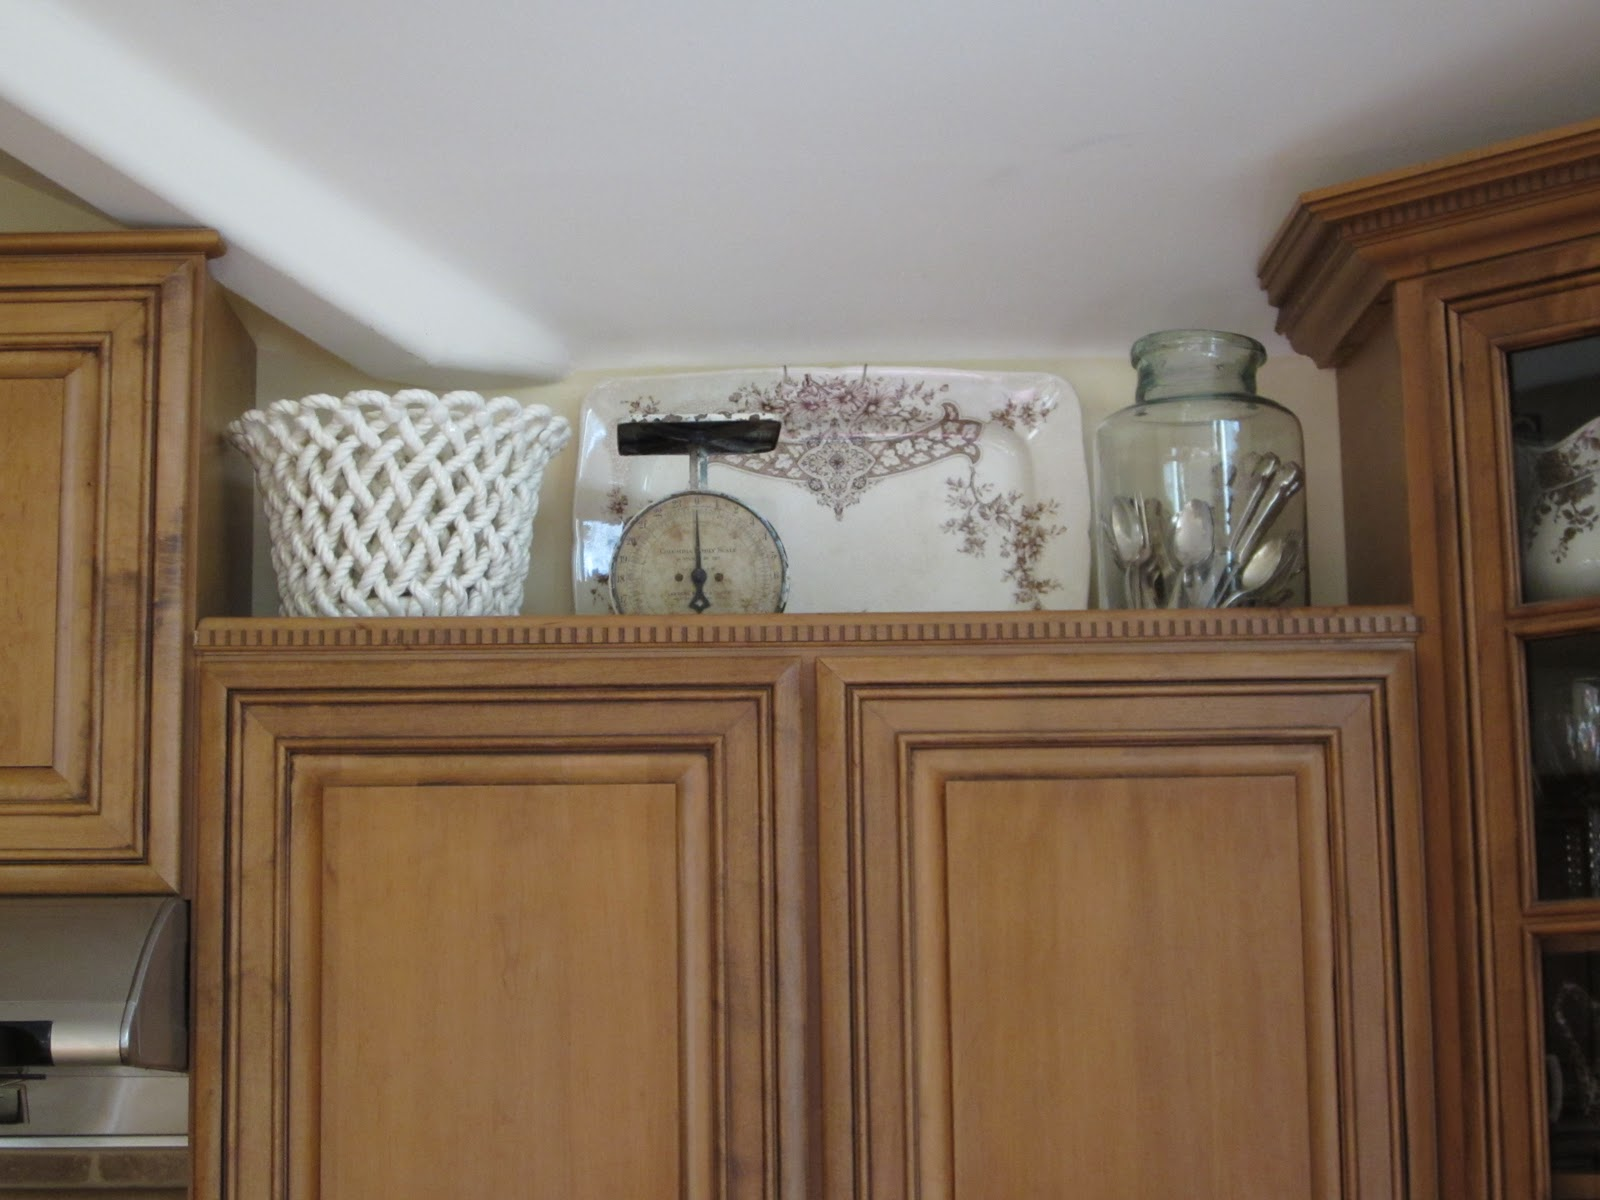 ANTIQUECHASE: Decorating Above Kitchen Cabinets